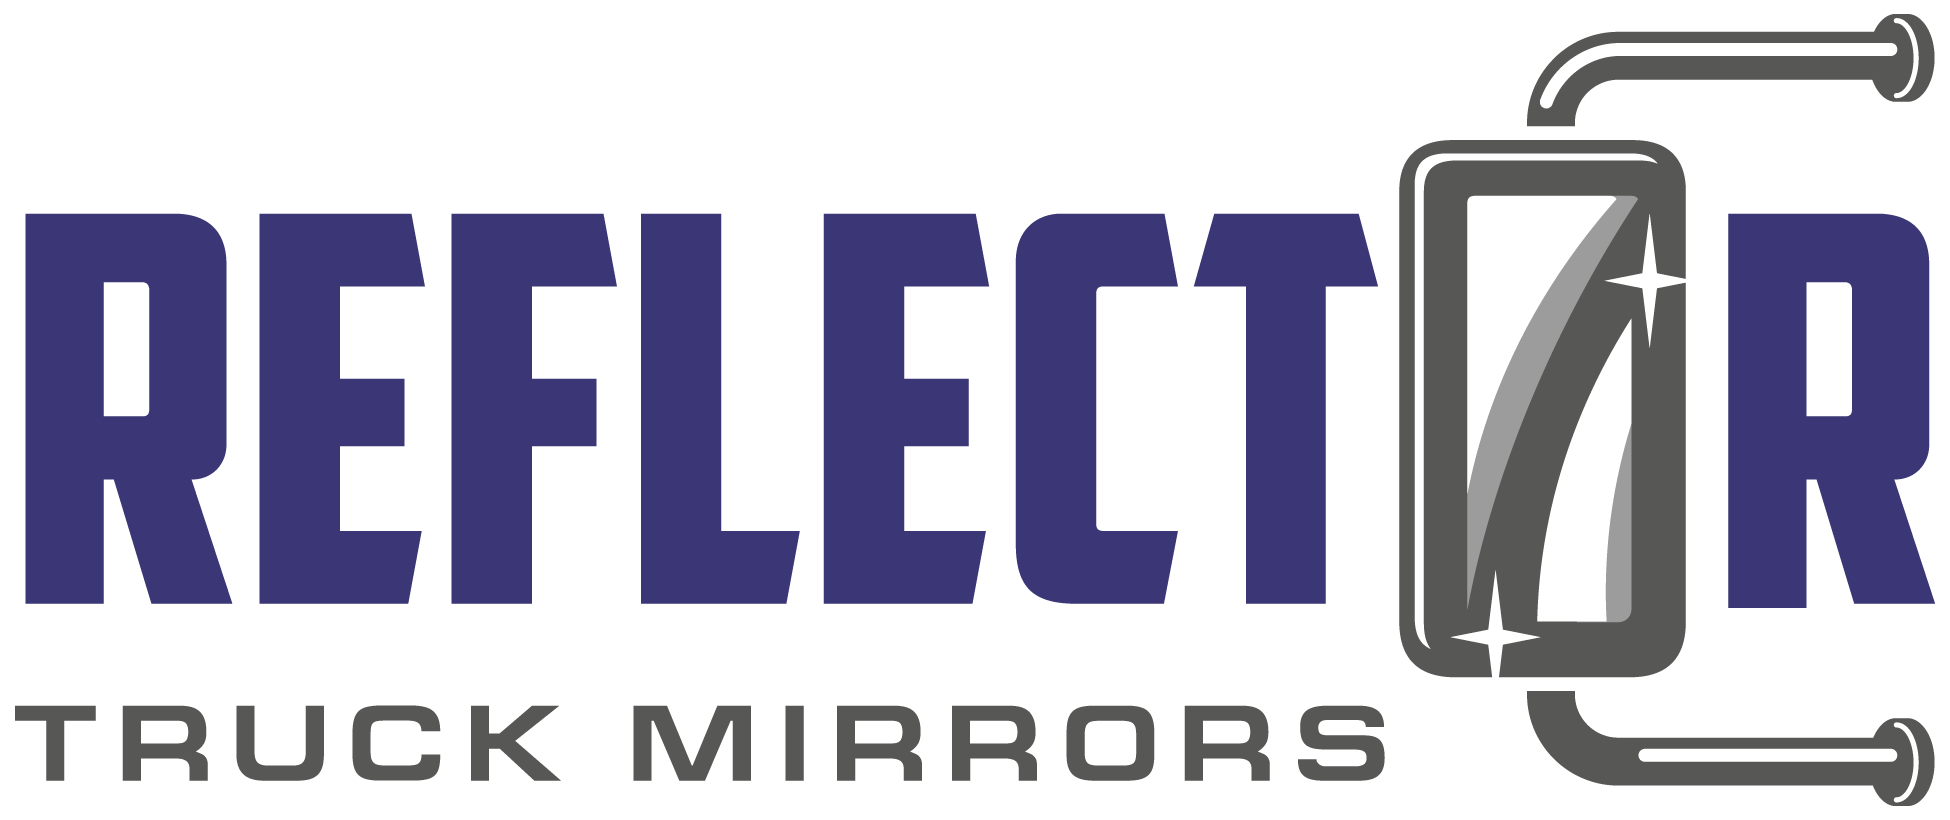 18-wheeler truck mirrors logo design